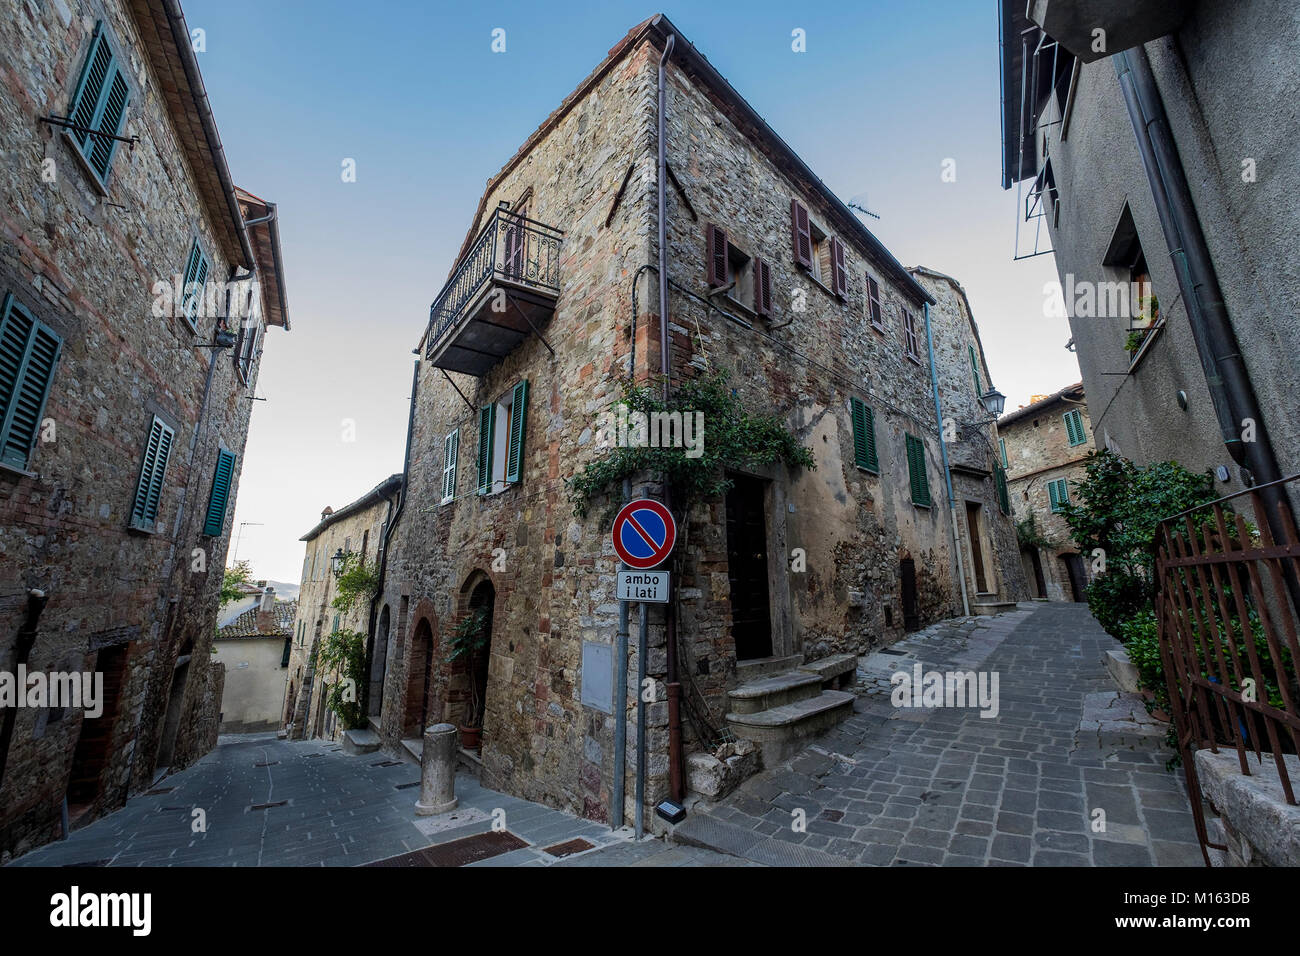 A view of the village of San Casciano dei Bagni, Italy. San Casciano ...